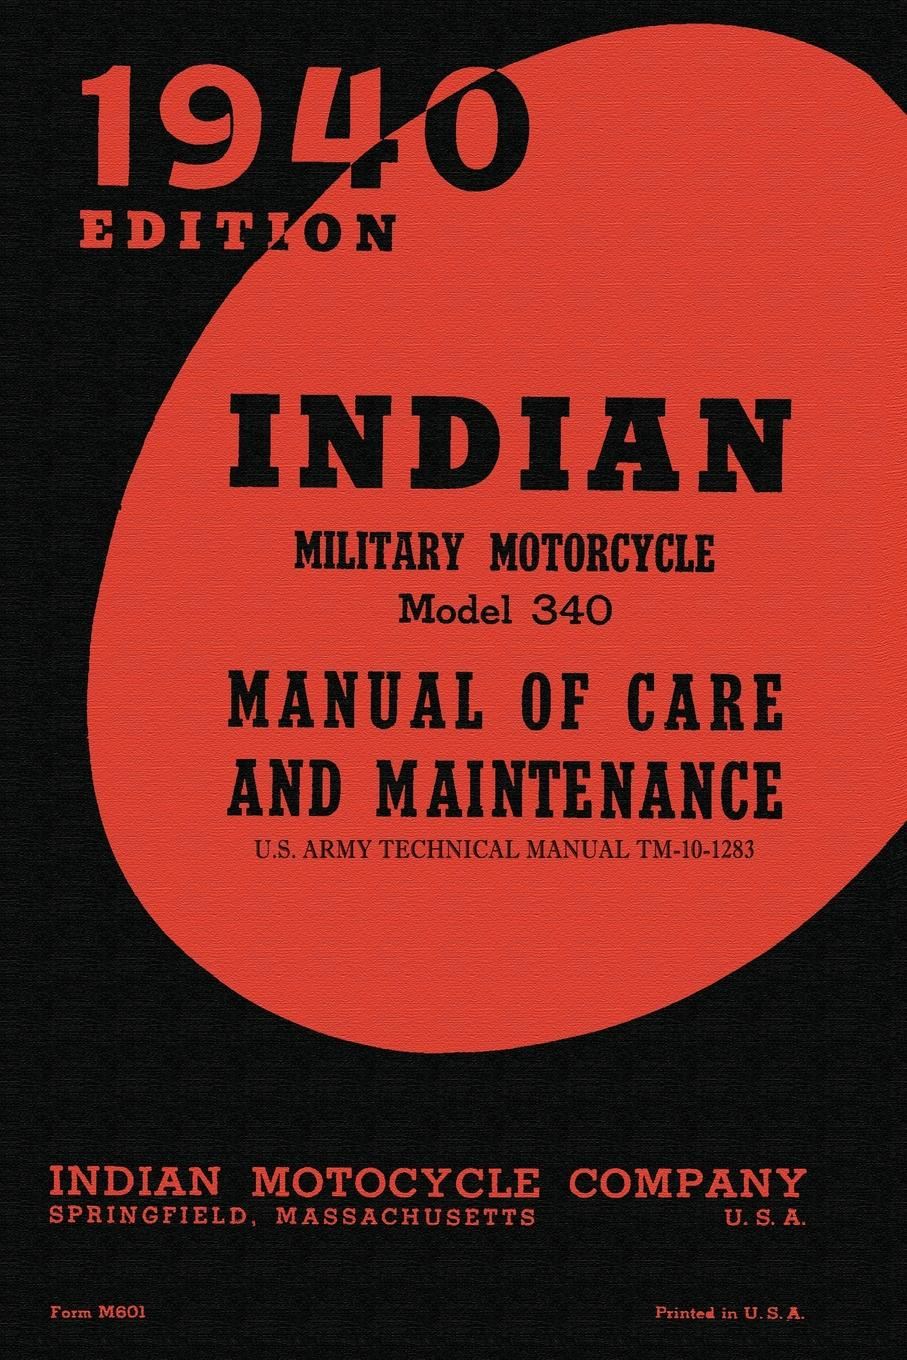 Indian Motocycle Company Indian Military Motorcycle Model 340 Manual of Care and Maintenance